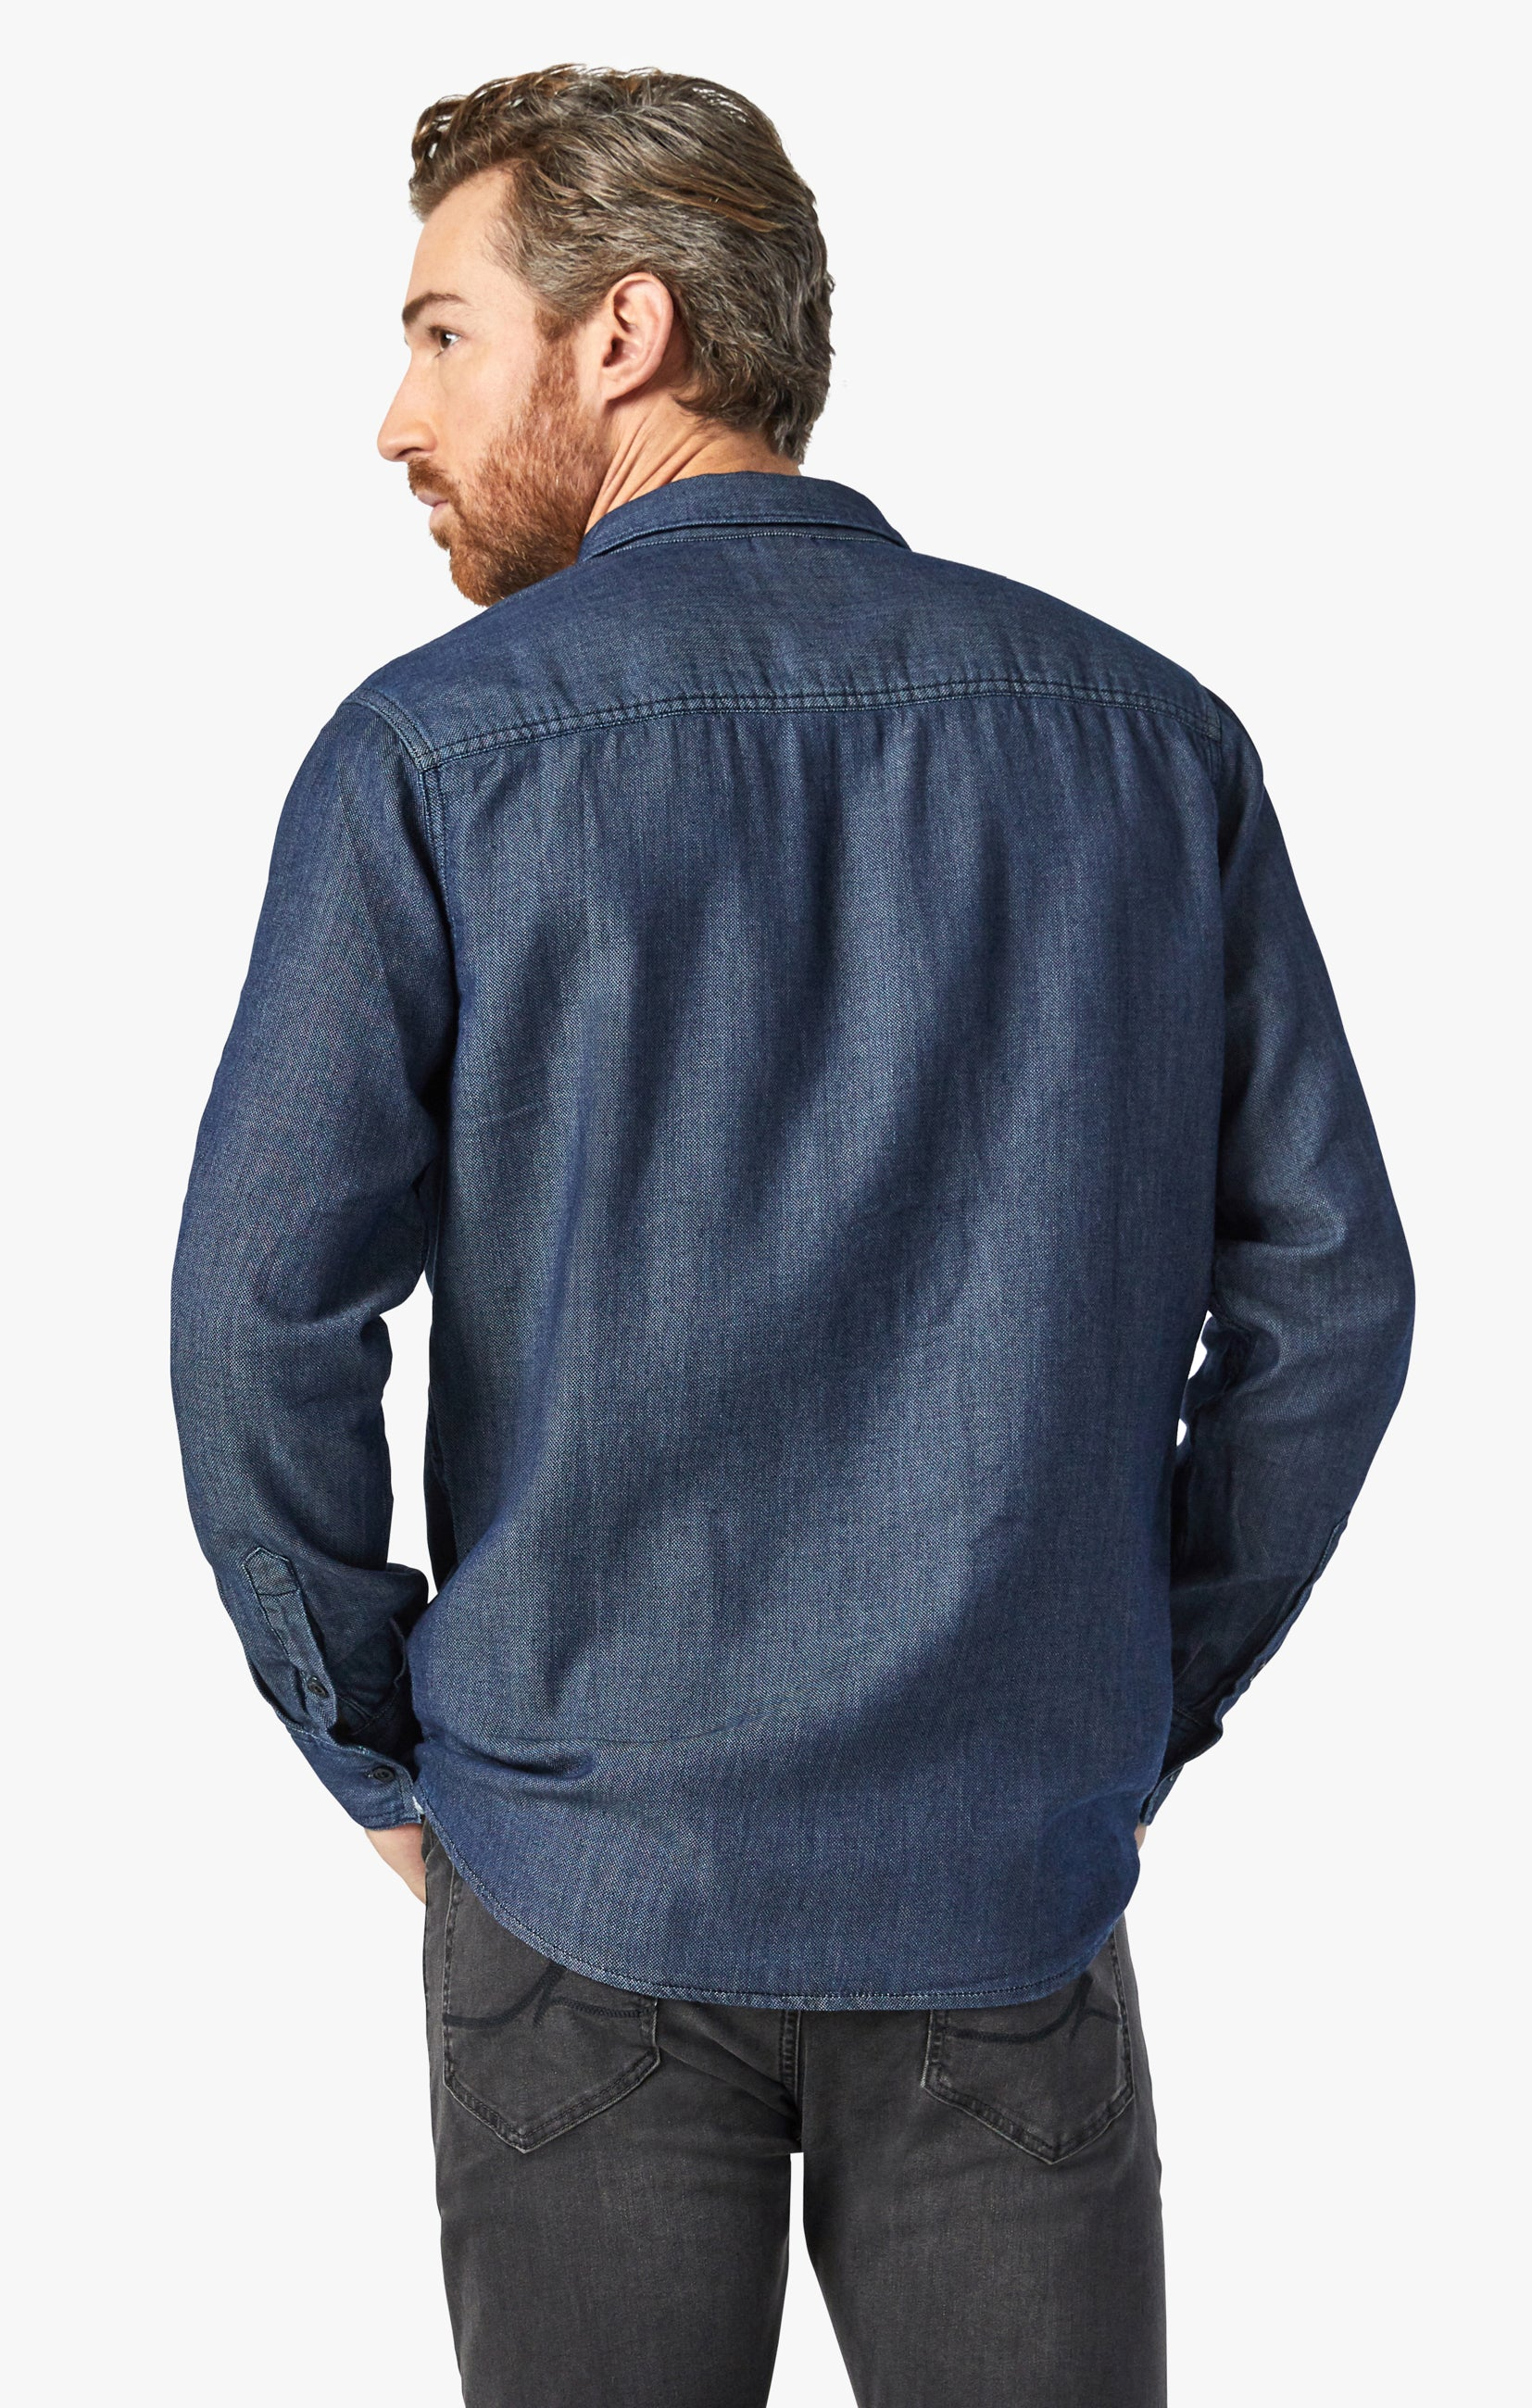 Chris Denim Shirt In Rinse Image 6